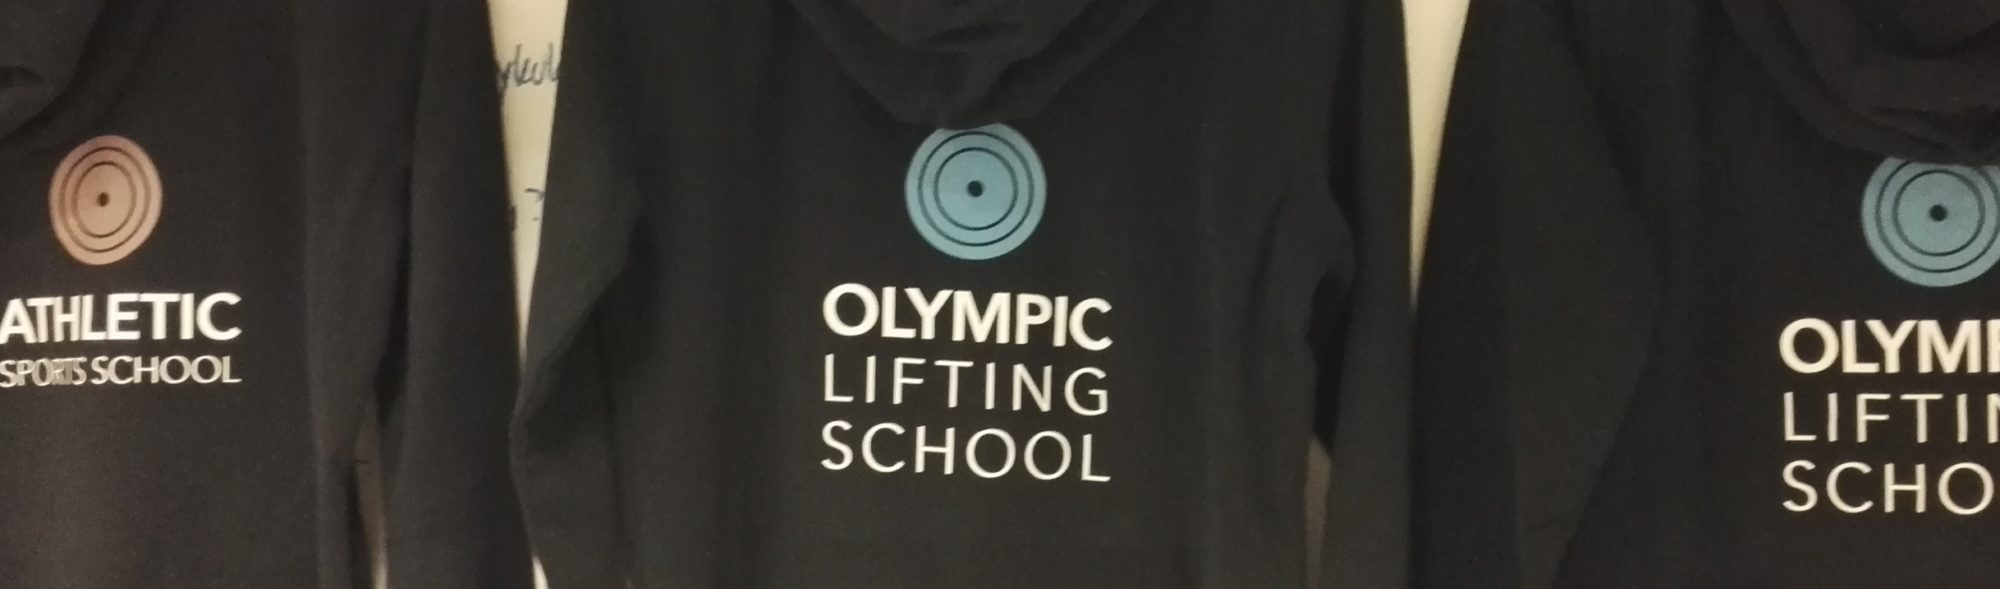 olympic lifting school